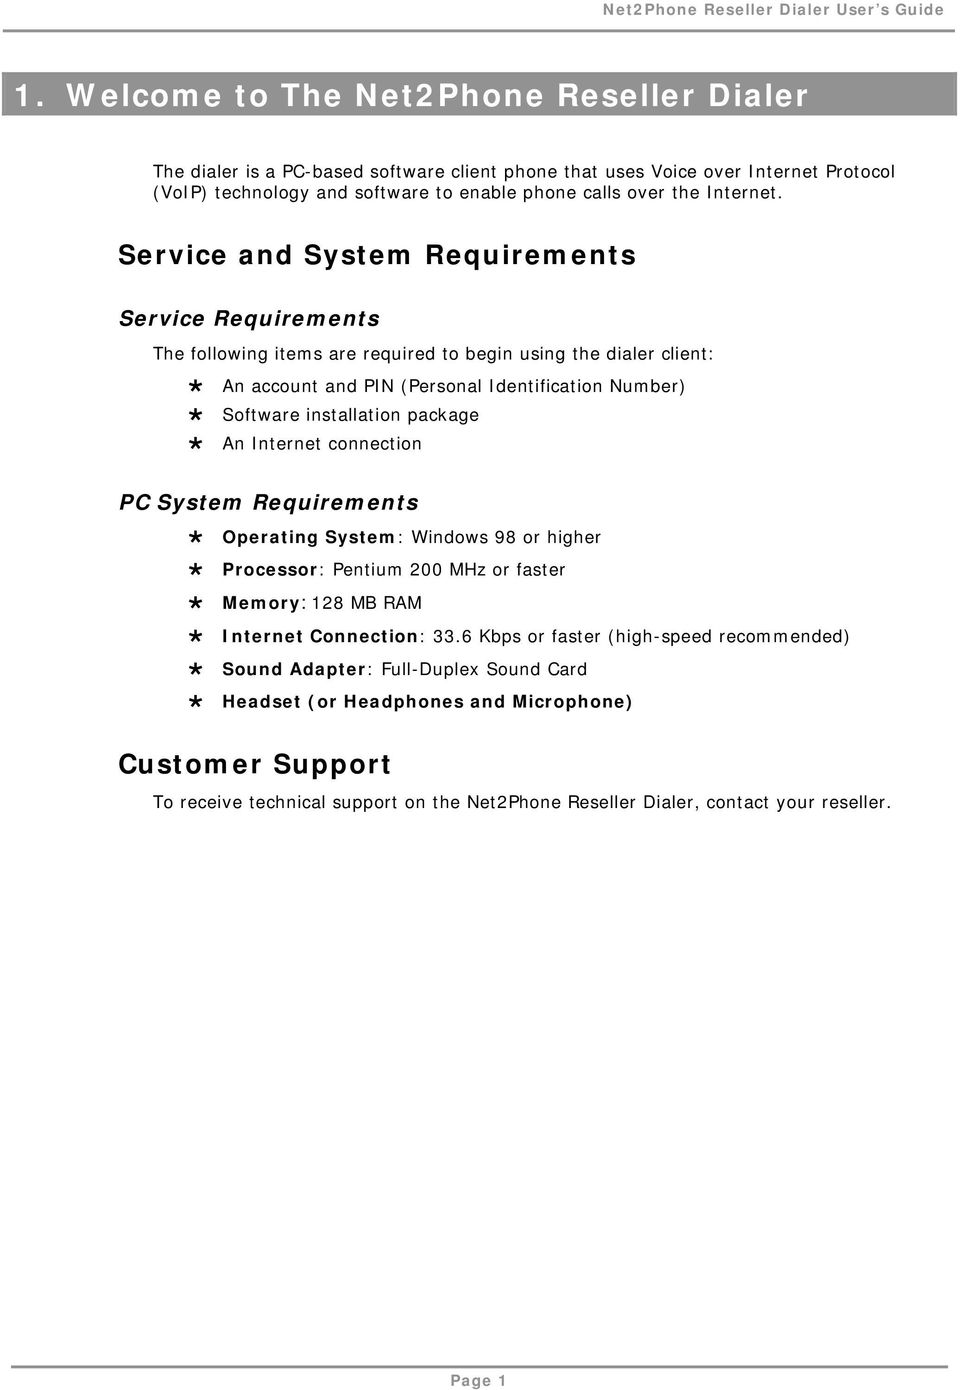 Service and System Requirements Service Requirements The following items are required to begin using the dialer client: An account and PIN (Personal Identification Number) Software installation